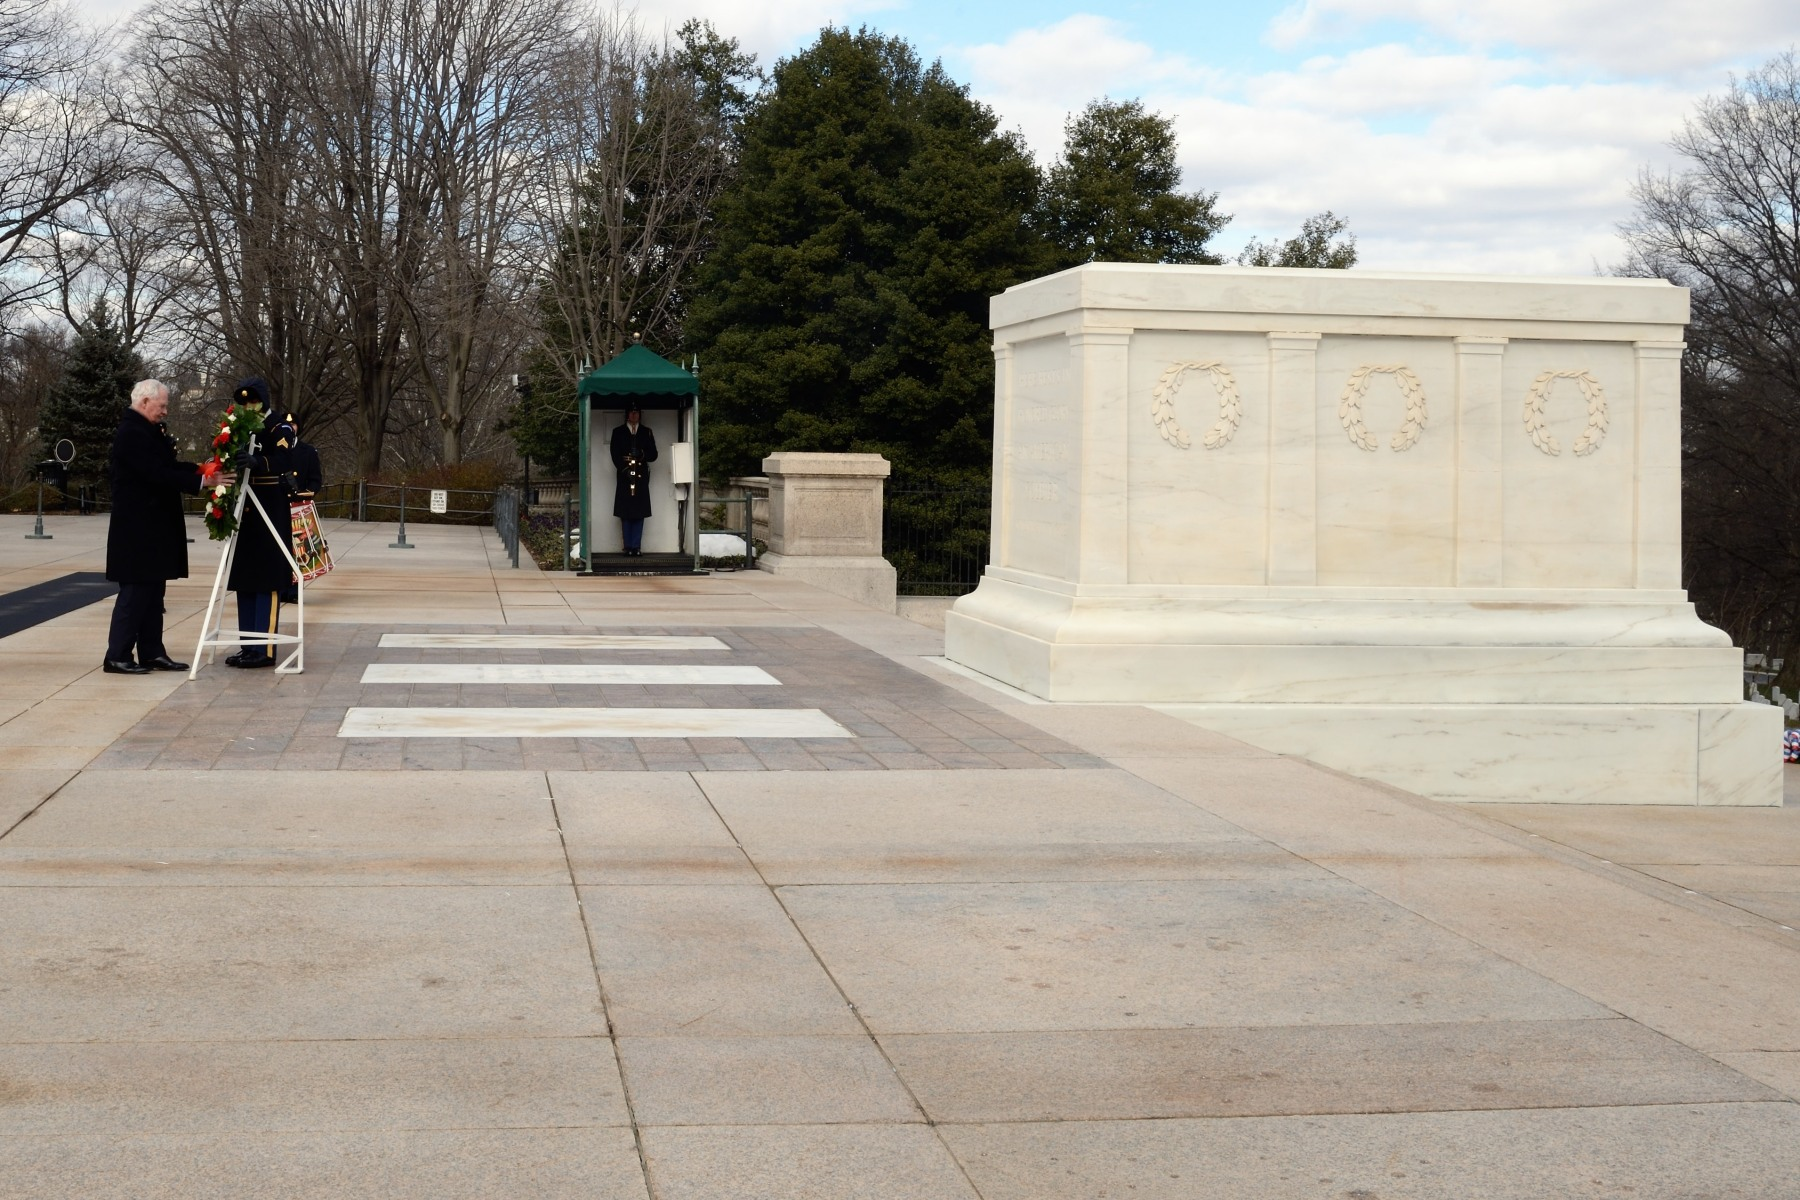 The Tomb of the Unknown Soldier is a monument dedicated to American service members who have died without their remains being identified.